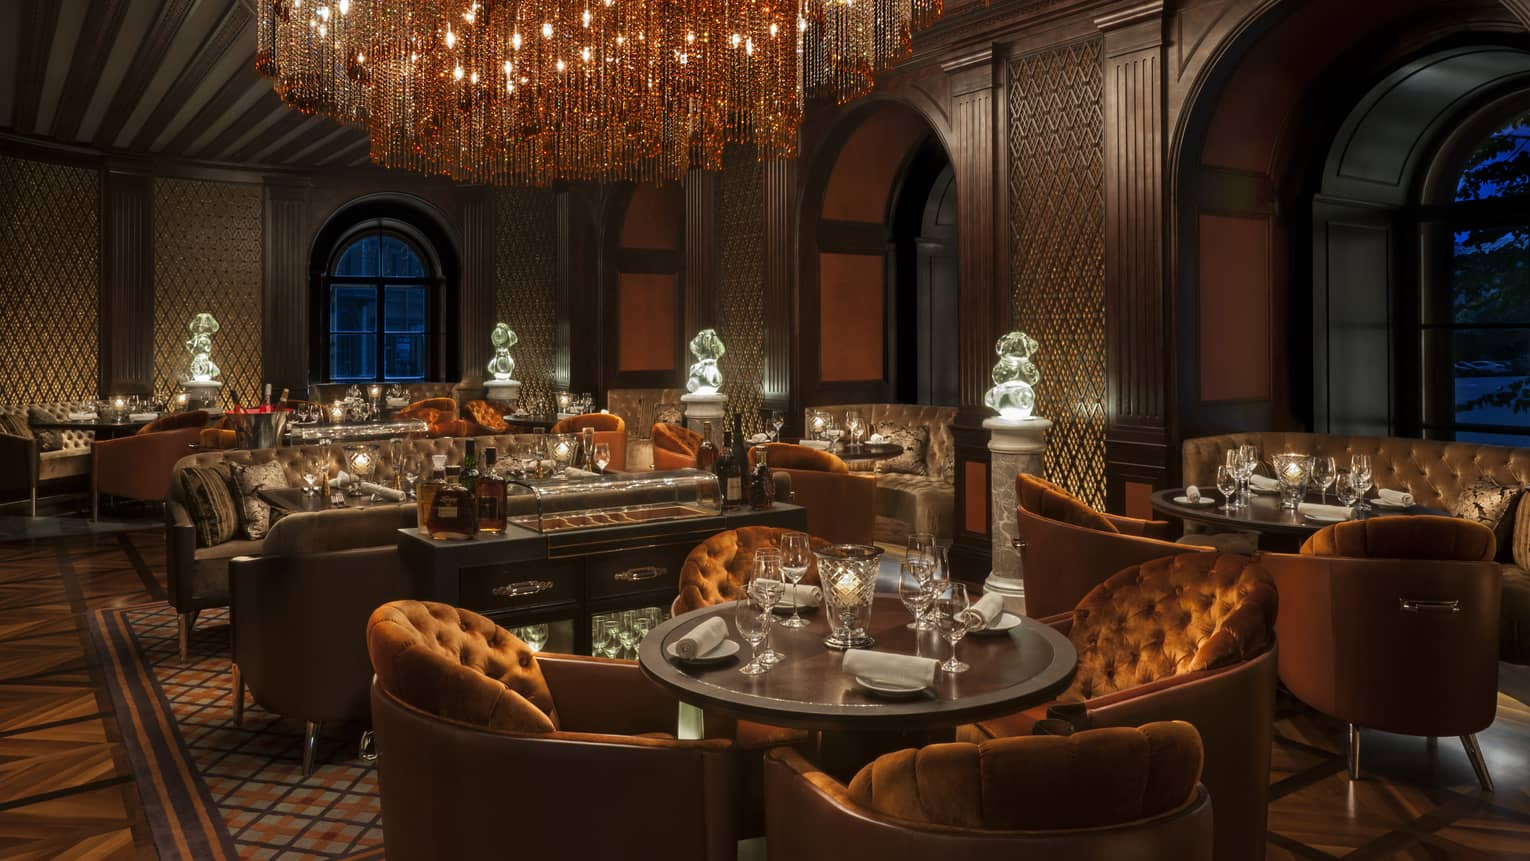 Orange velvet armchairs, brown leather sofas under elaborate chandeliers in Porcorso lounge